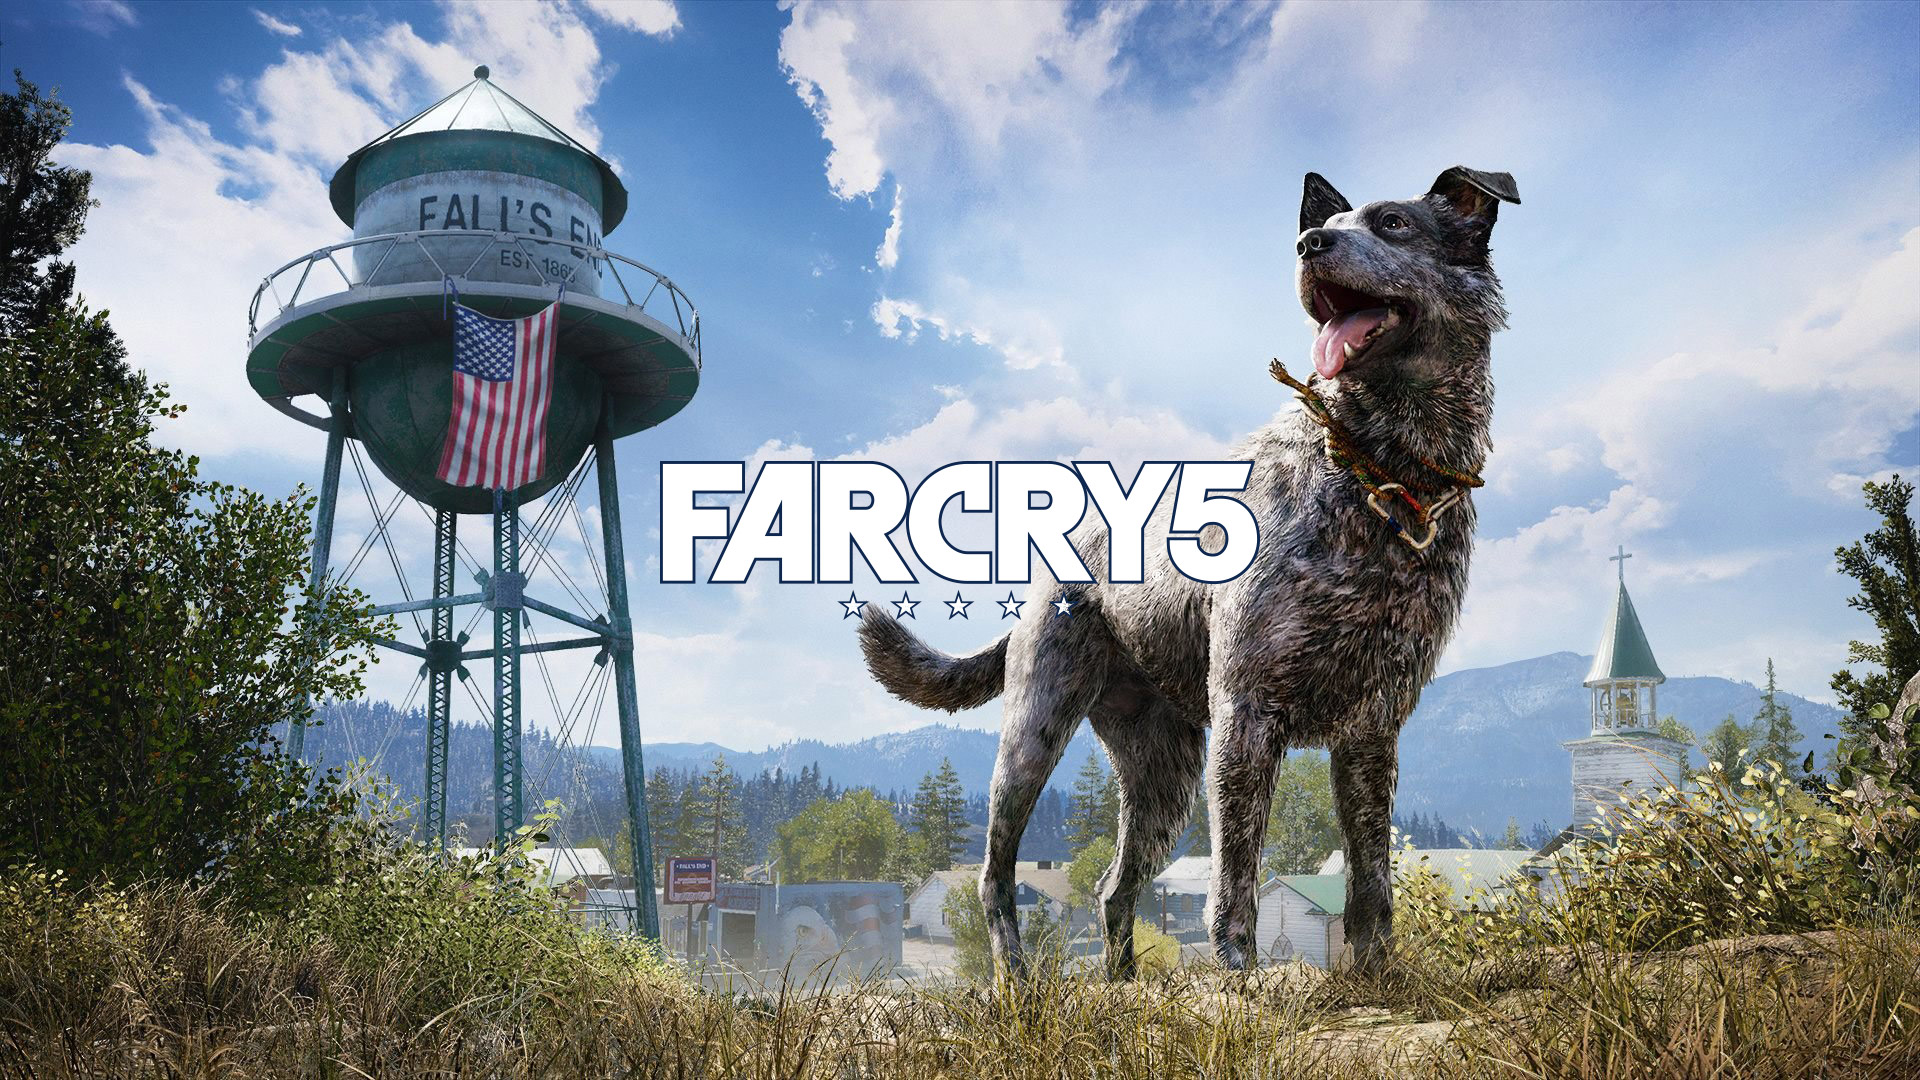 Far Cry 5 Wallpaper in 1920x1080